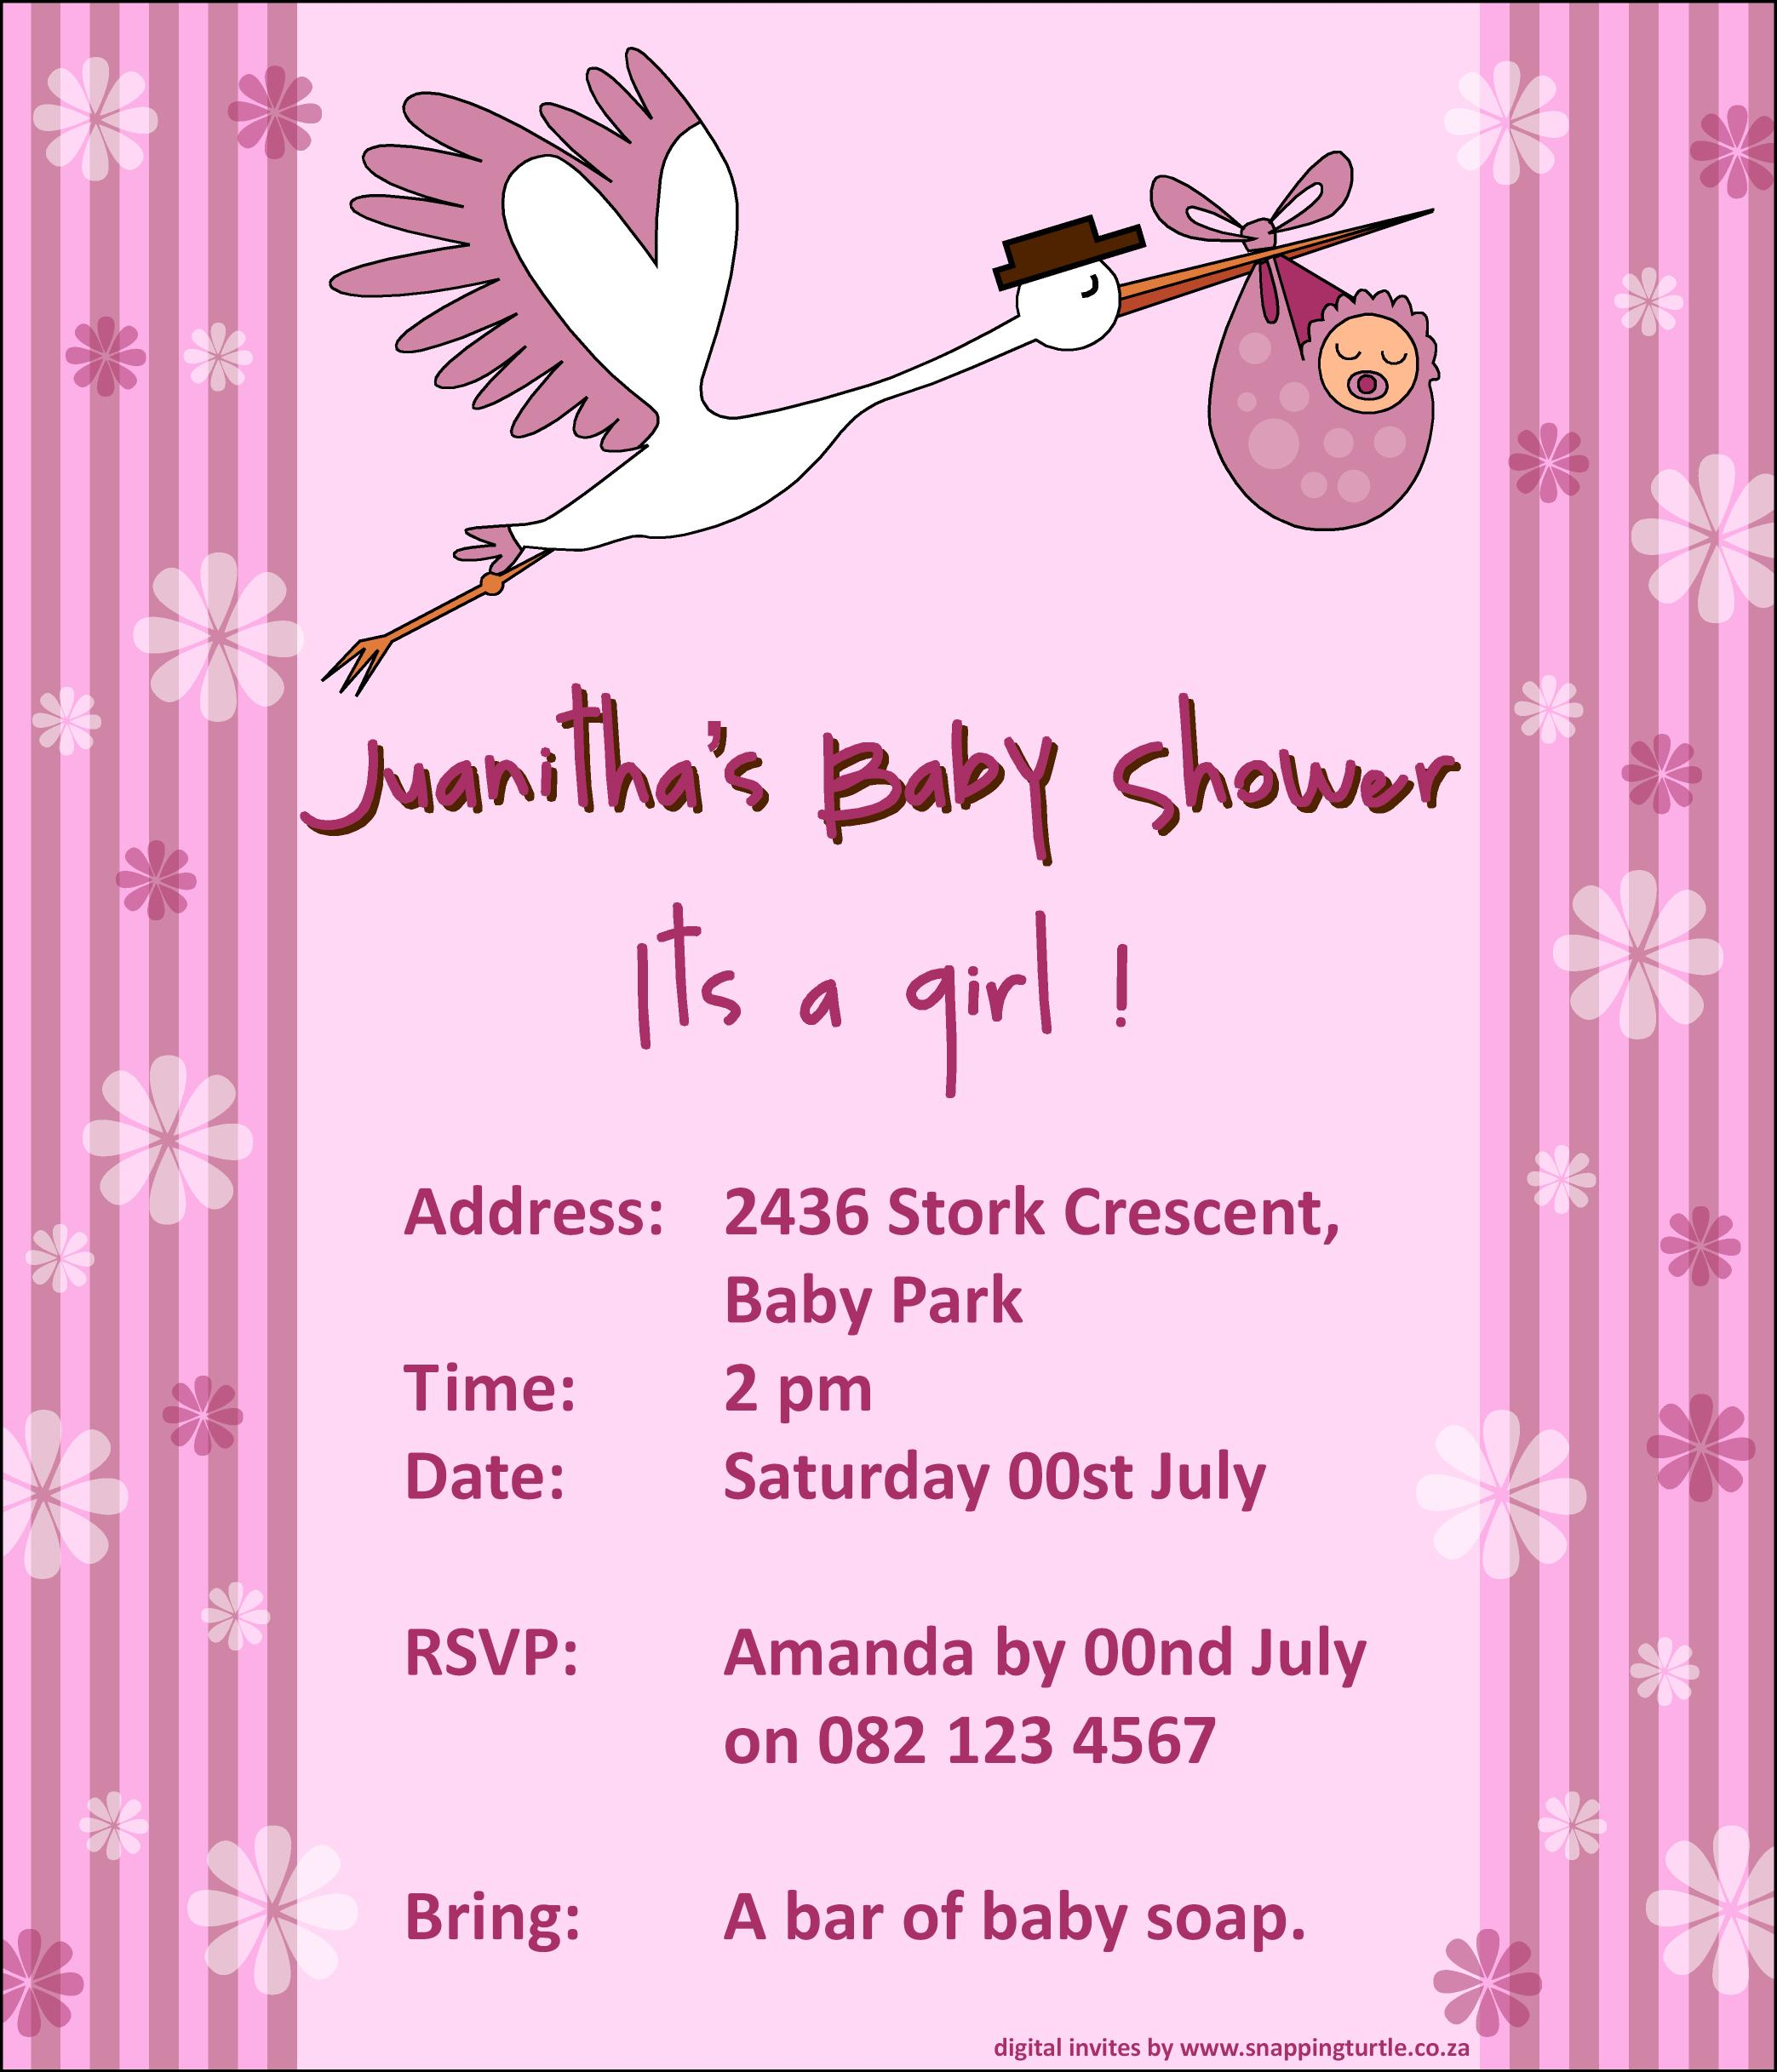 Full Size of Baby Shower:sturdy Baby Shower Invitation Template Image Concepts Baby Shower Invitation Template Electronic Baby Shower Invitations Electronic Baby Shower